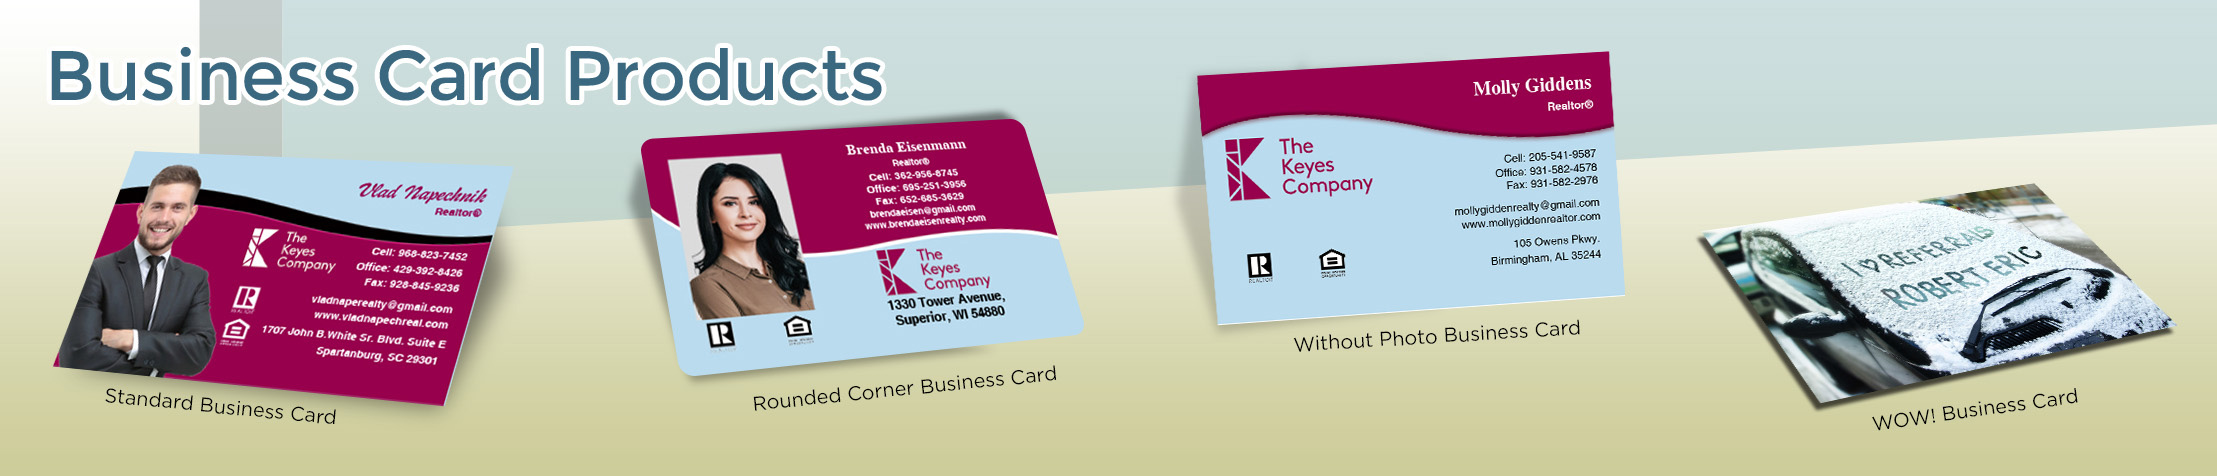 The Keyes Company Real Estate Business Card Products - The Keyes Company  - Unique, Custom Business Cards Printed on Quality Stock with Creative Designs for Realtors | BestPrintBuy.com